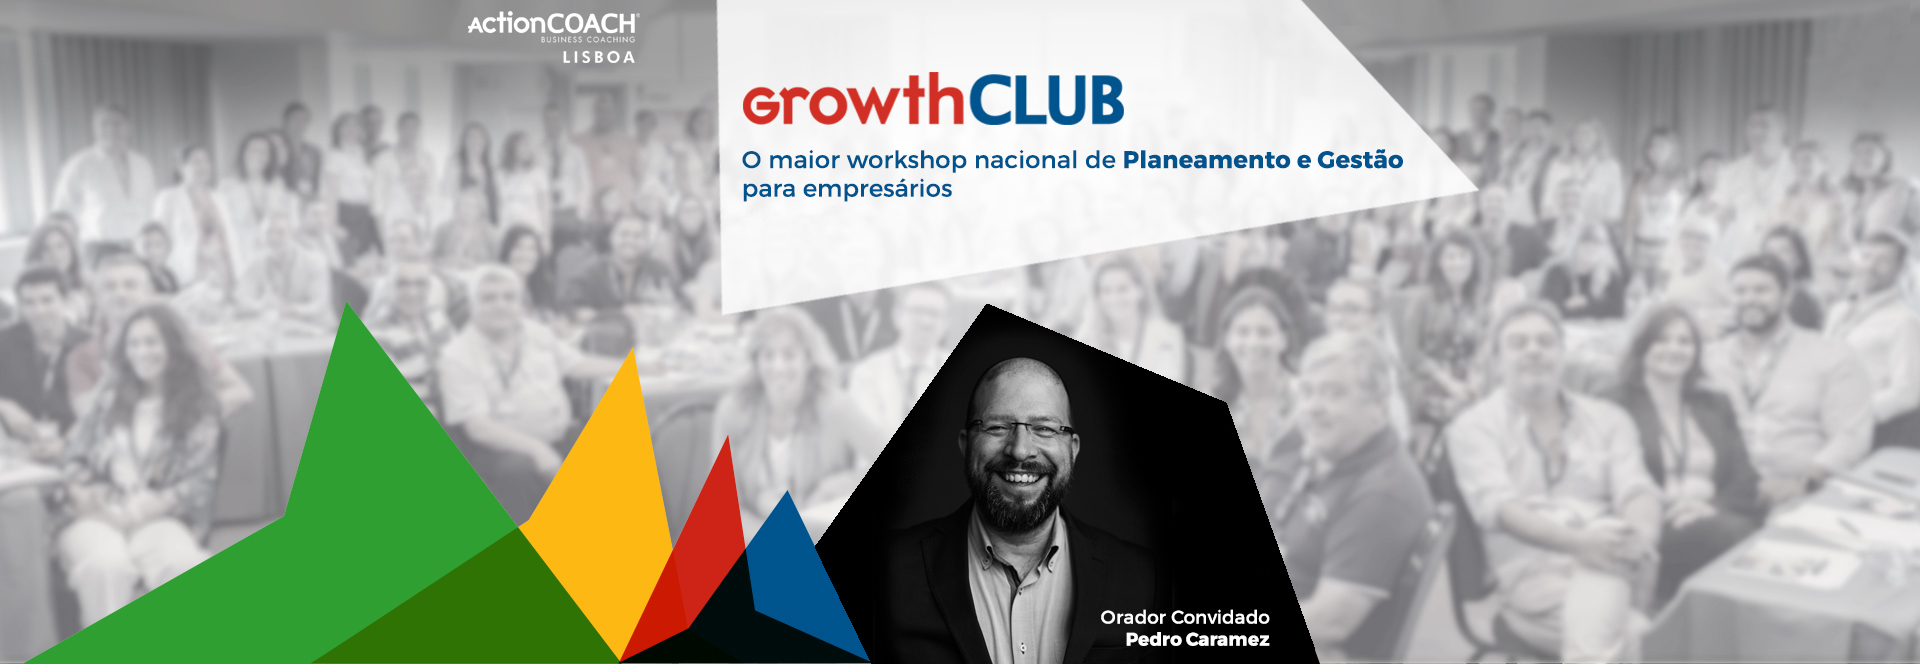 Growthclub Header Pos 3 10